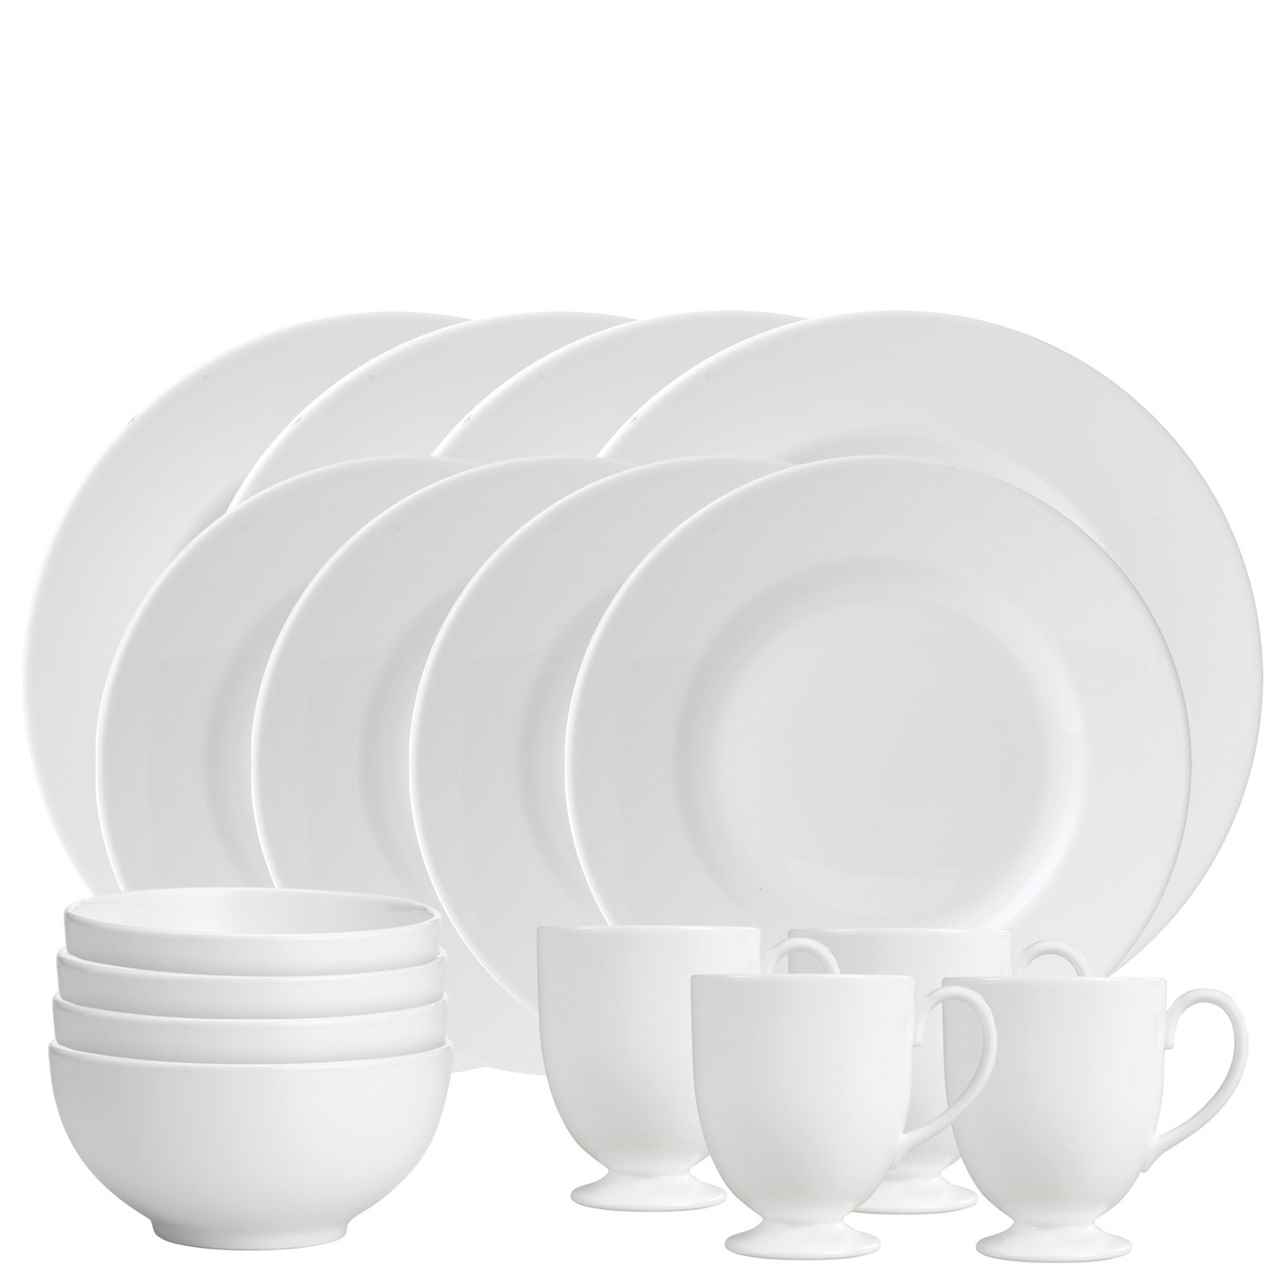 Wedgwood White 16 Piece Dinner Set